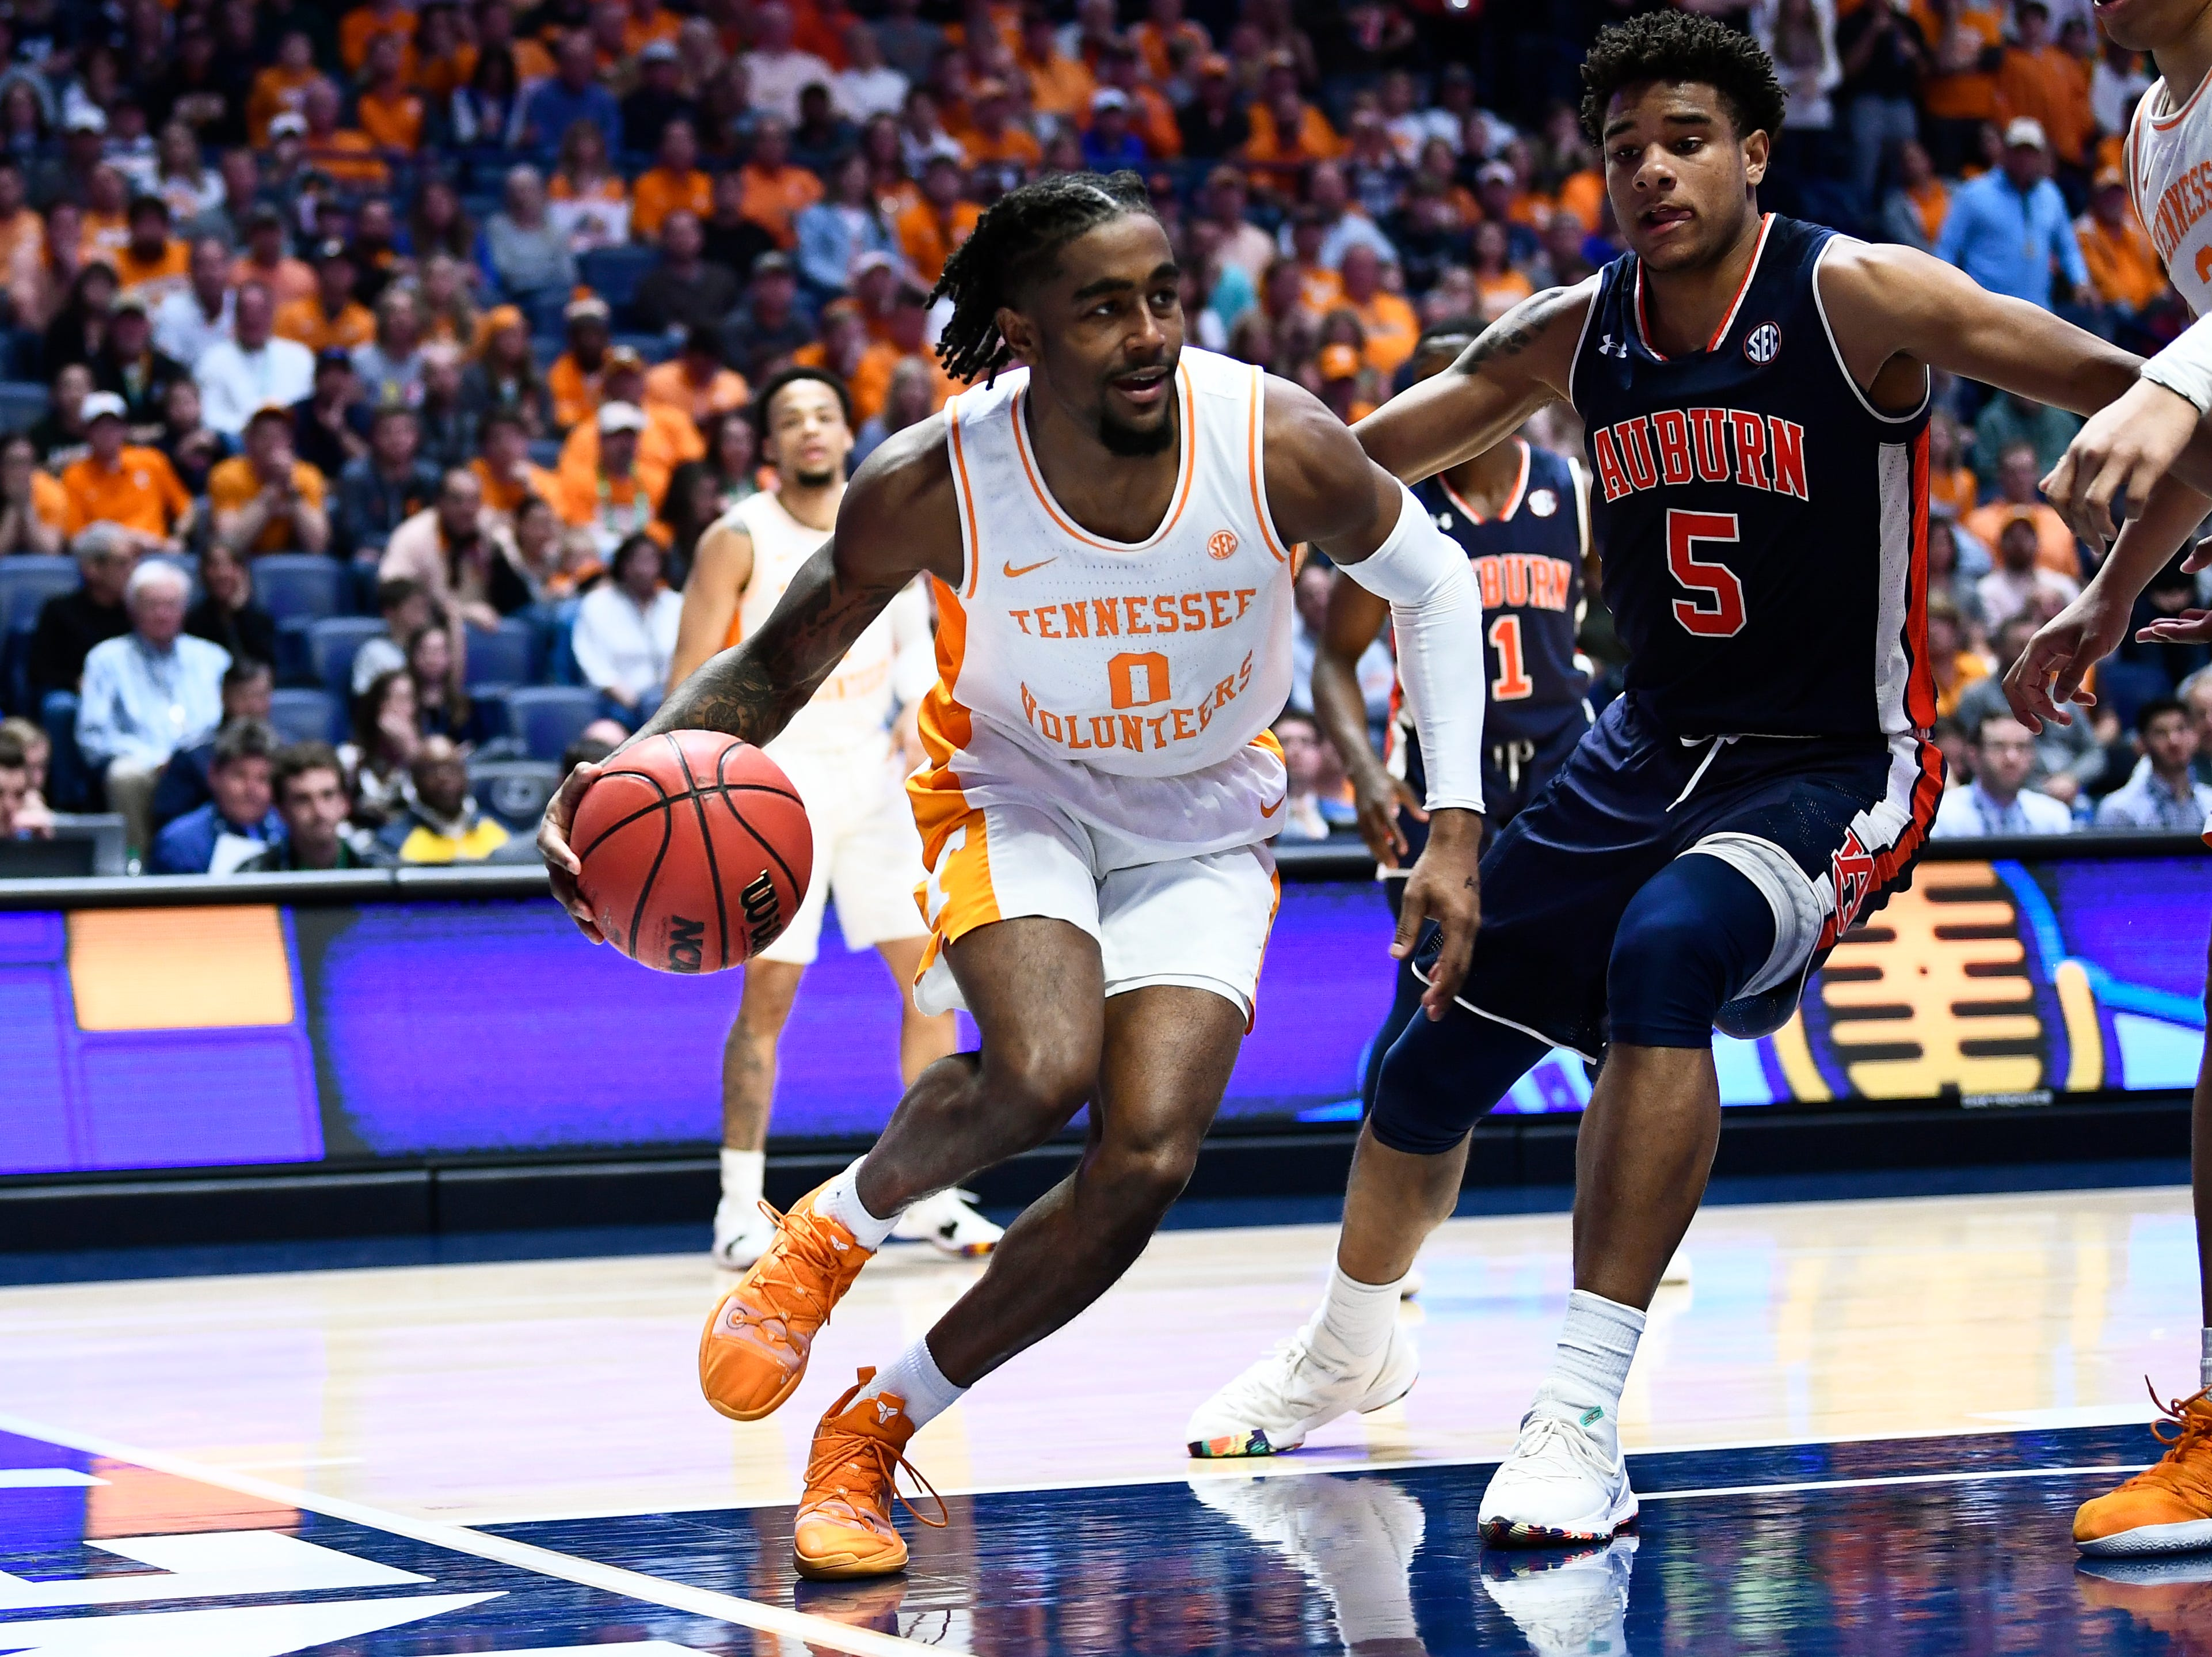 Tennessee guard Jordan Bone (0) drives towards the basket while defended by Auburn forward Chuma Okeke (5) during the second half of the SEC Men's Basketball Tournament championship game at Bridgestone Arena in Nashville, Tenn., Sunday, March 17, 2019.